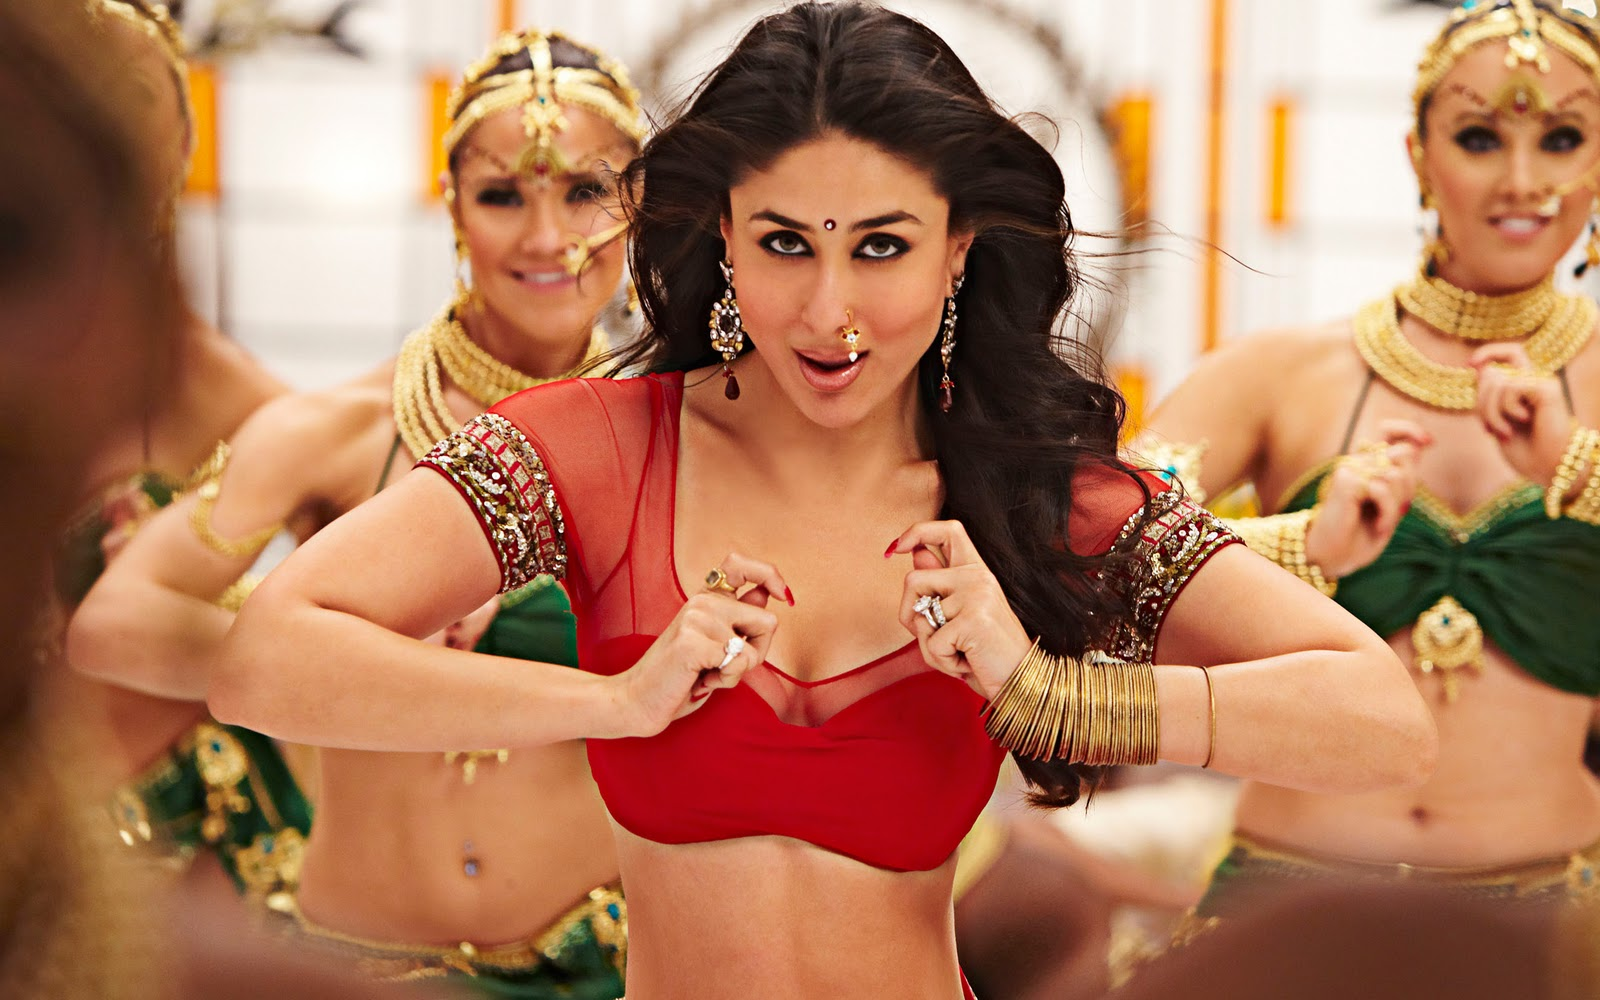 http://2.bp.blogspot.com/-lkVJ_6J838U/TqhZao9pXCI/AAAAAAAAAuI/-WQl22NCyN8/s1600/ra.one+movie+kareena+hd+wallpaper.jpg